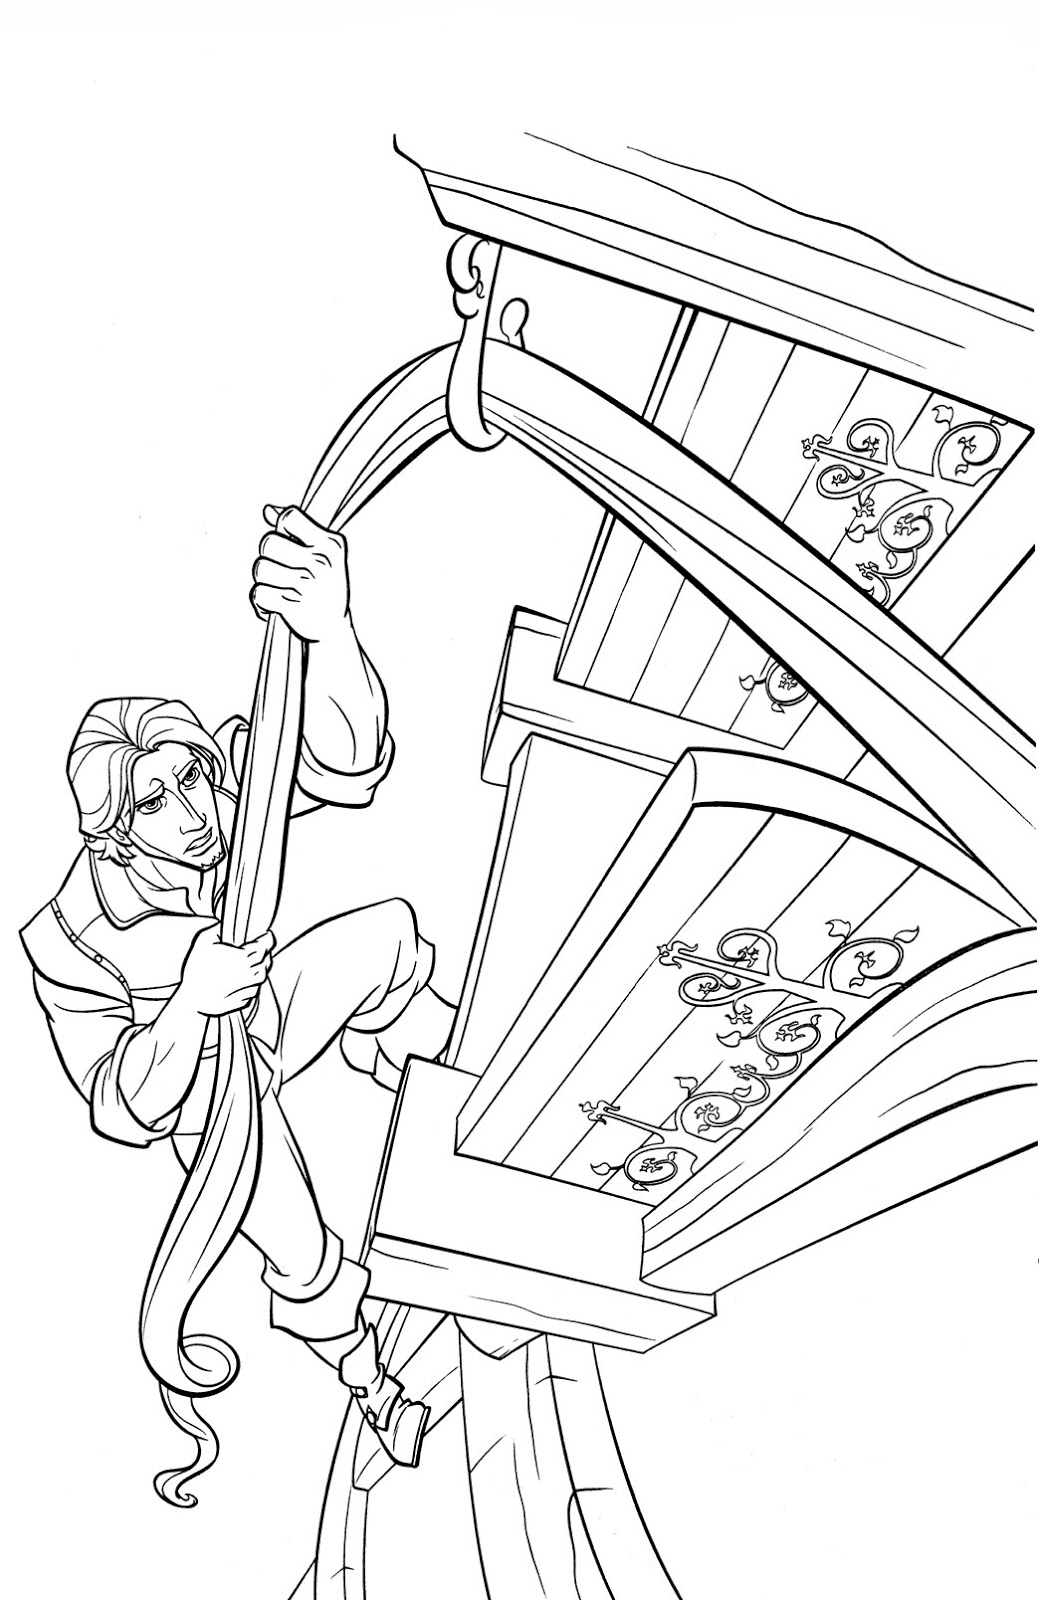 Flynn climbs the tower Coloring Page